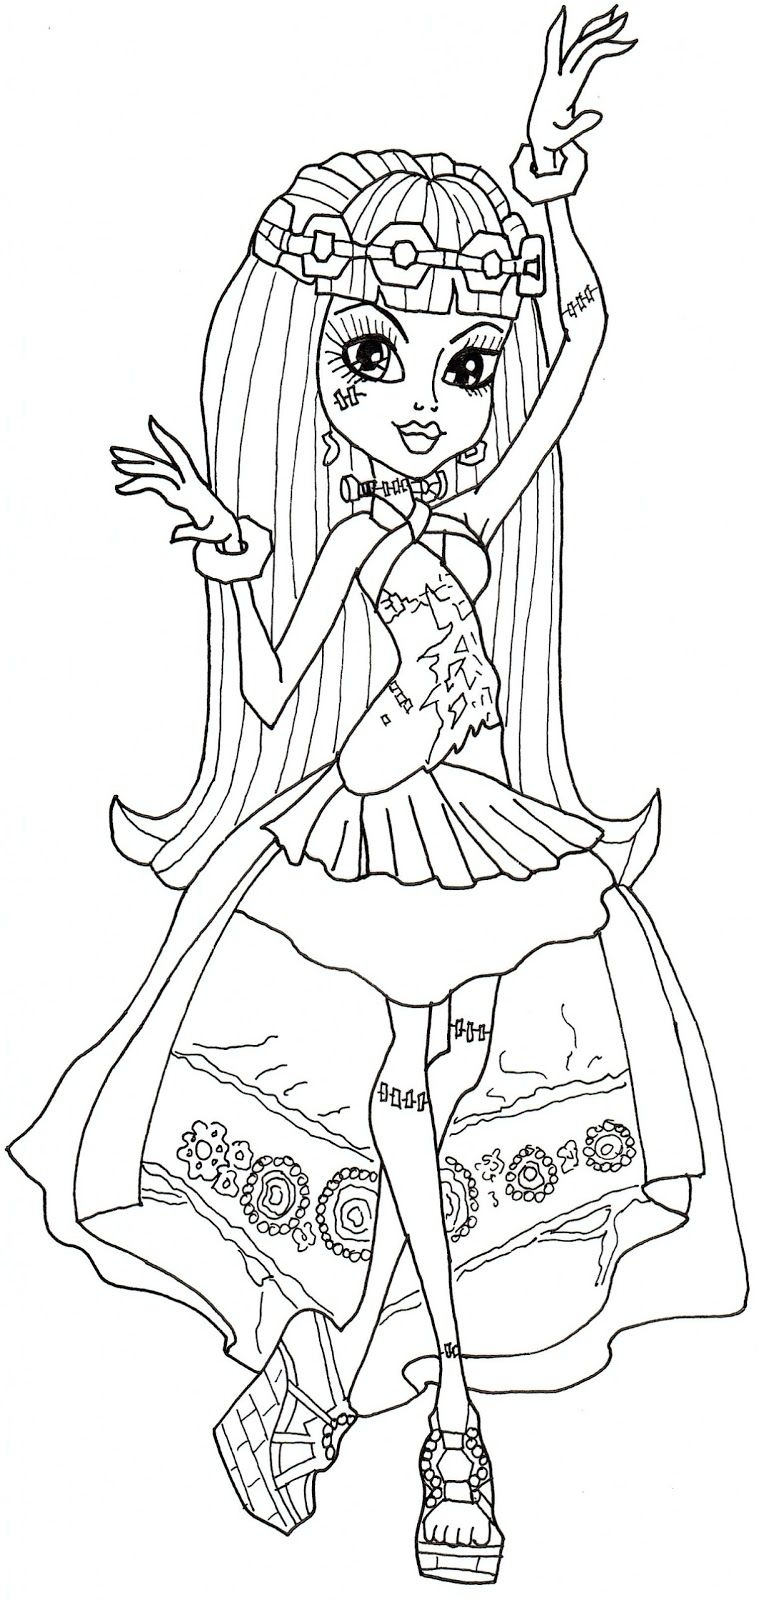 Free Printable Monster High Coloring Pages: Frankie Stein 13 Wishes ...